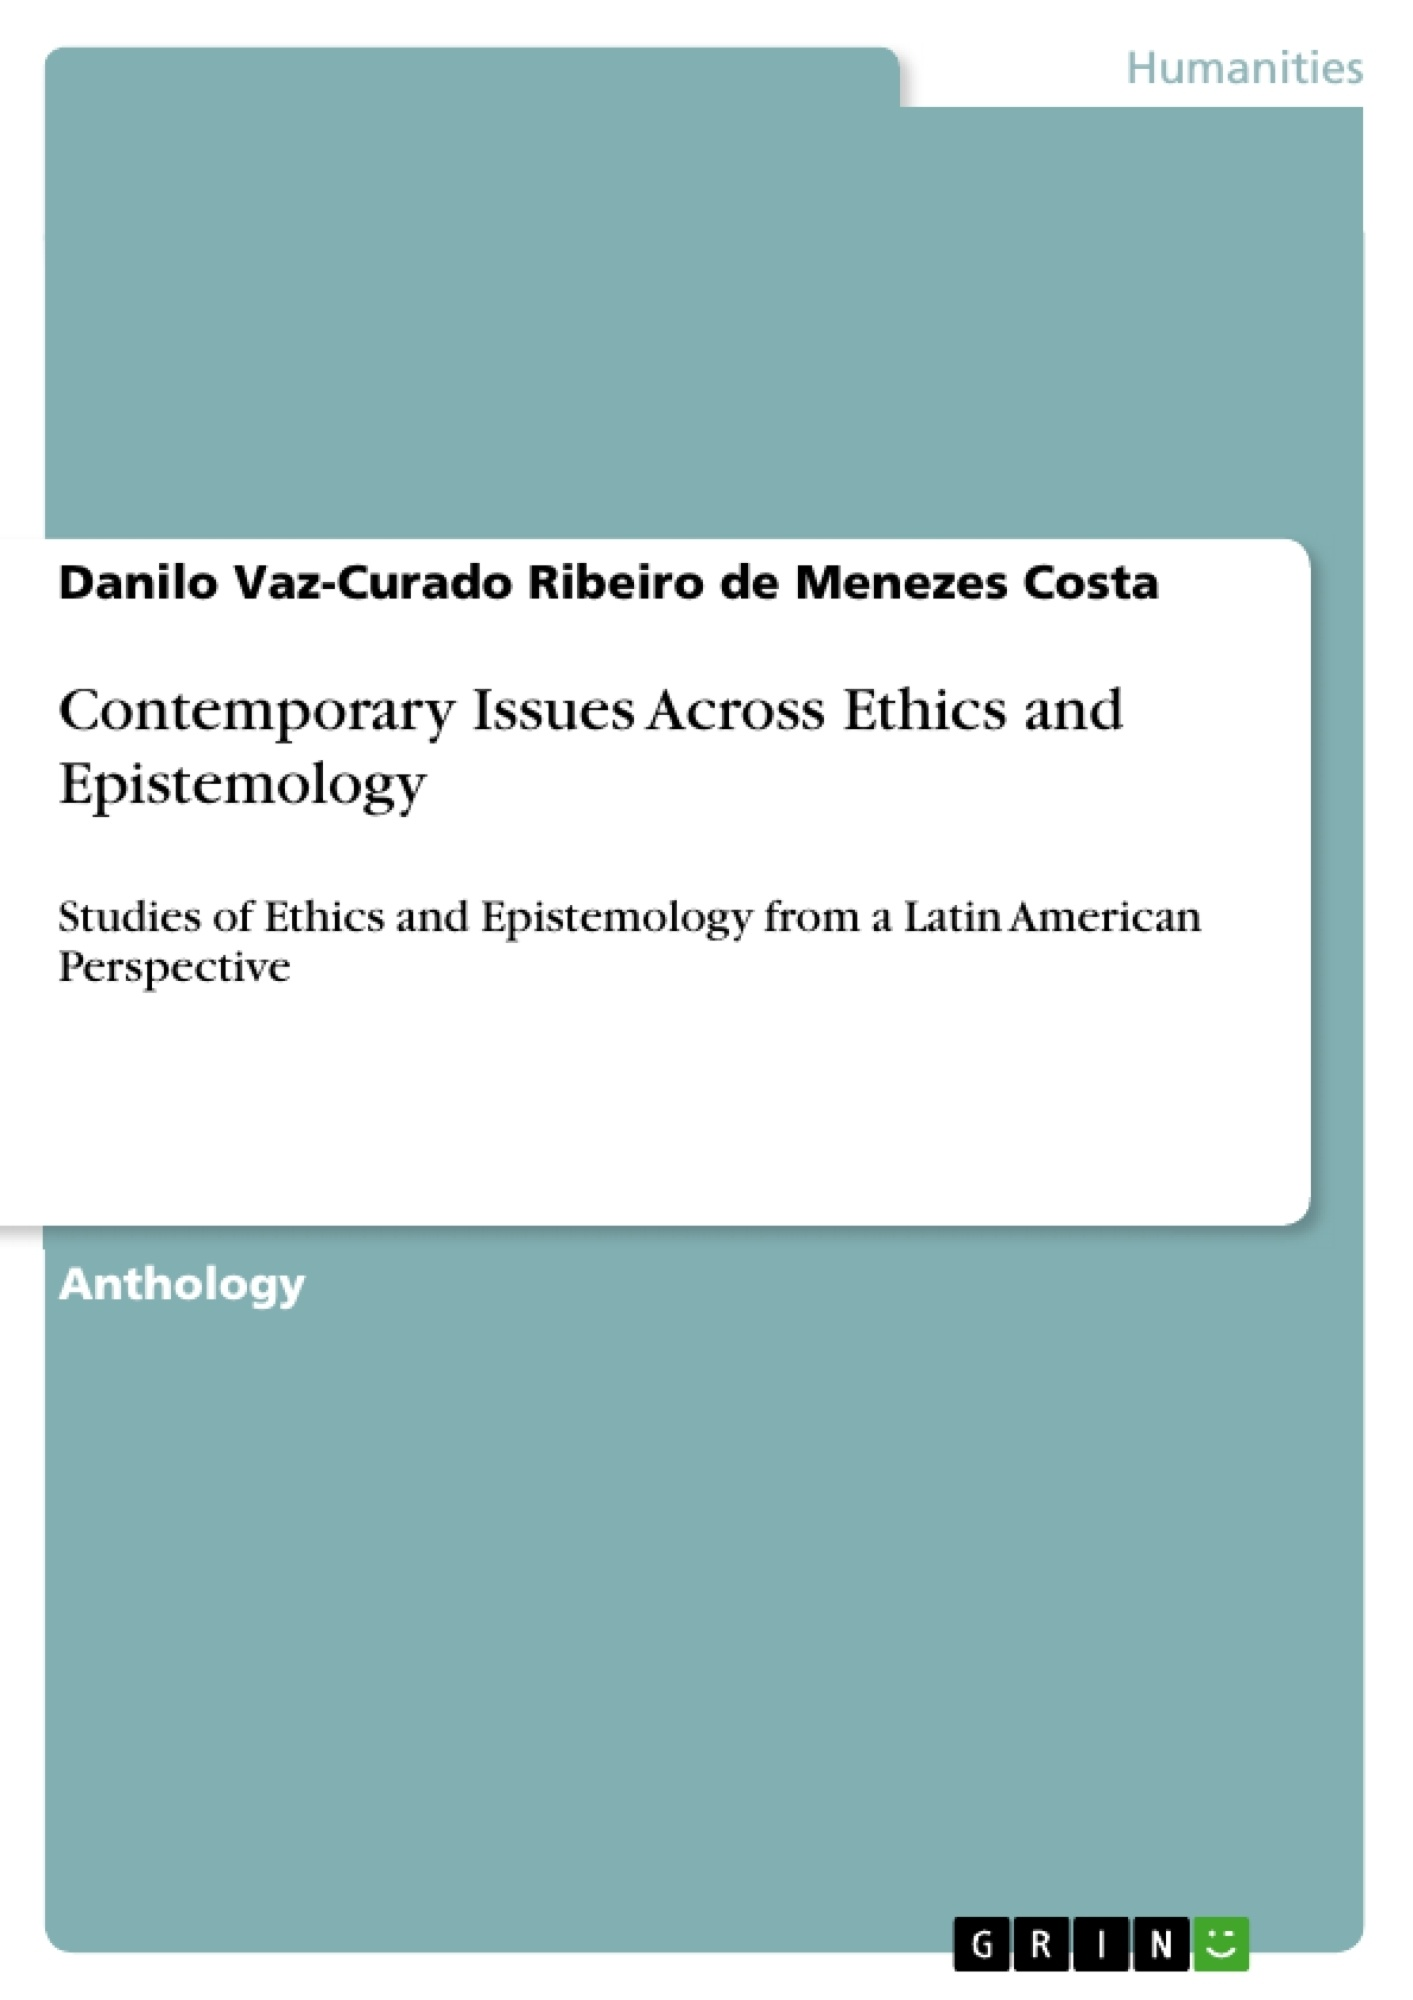 Bioethics: Ancient Themes in Contemporary Issues